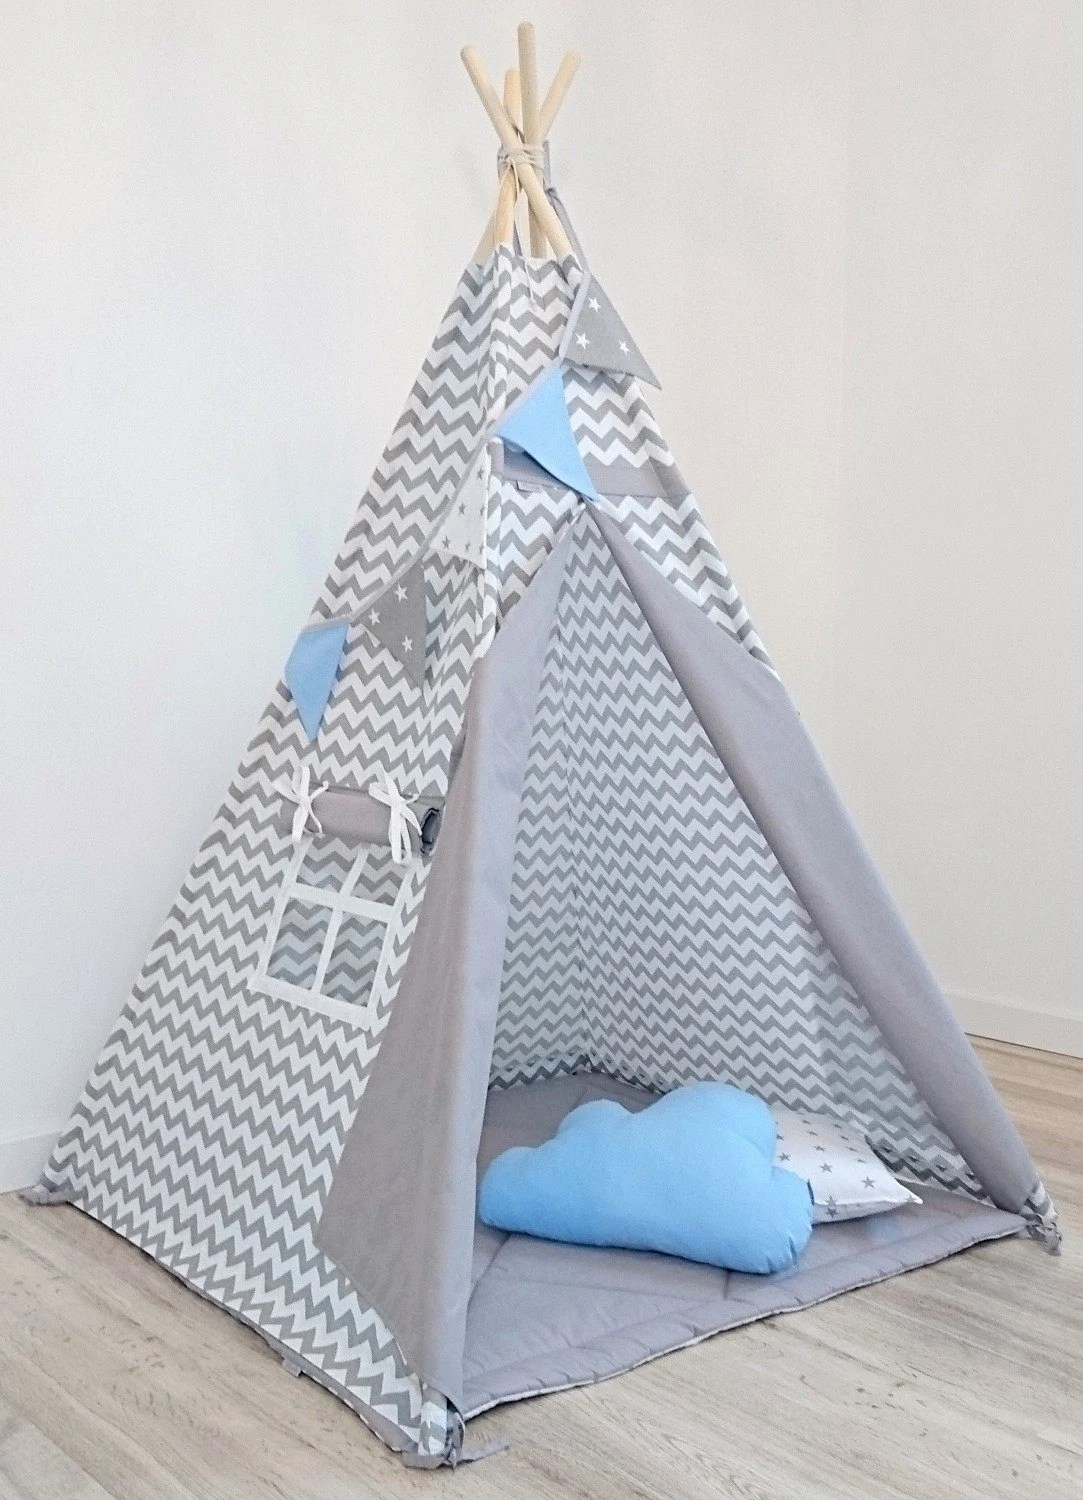 Teepee Kids Kids Teepee Indian Teepee Childrens Teepee Sale Teepee Play Tent Tipi Teepee Tent Tipi Zelt Wigwam With Mat Zigzag Grey Blue Set